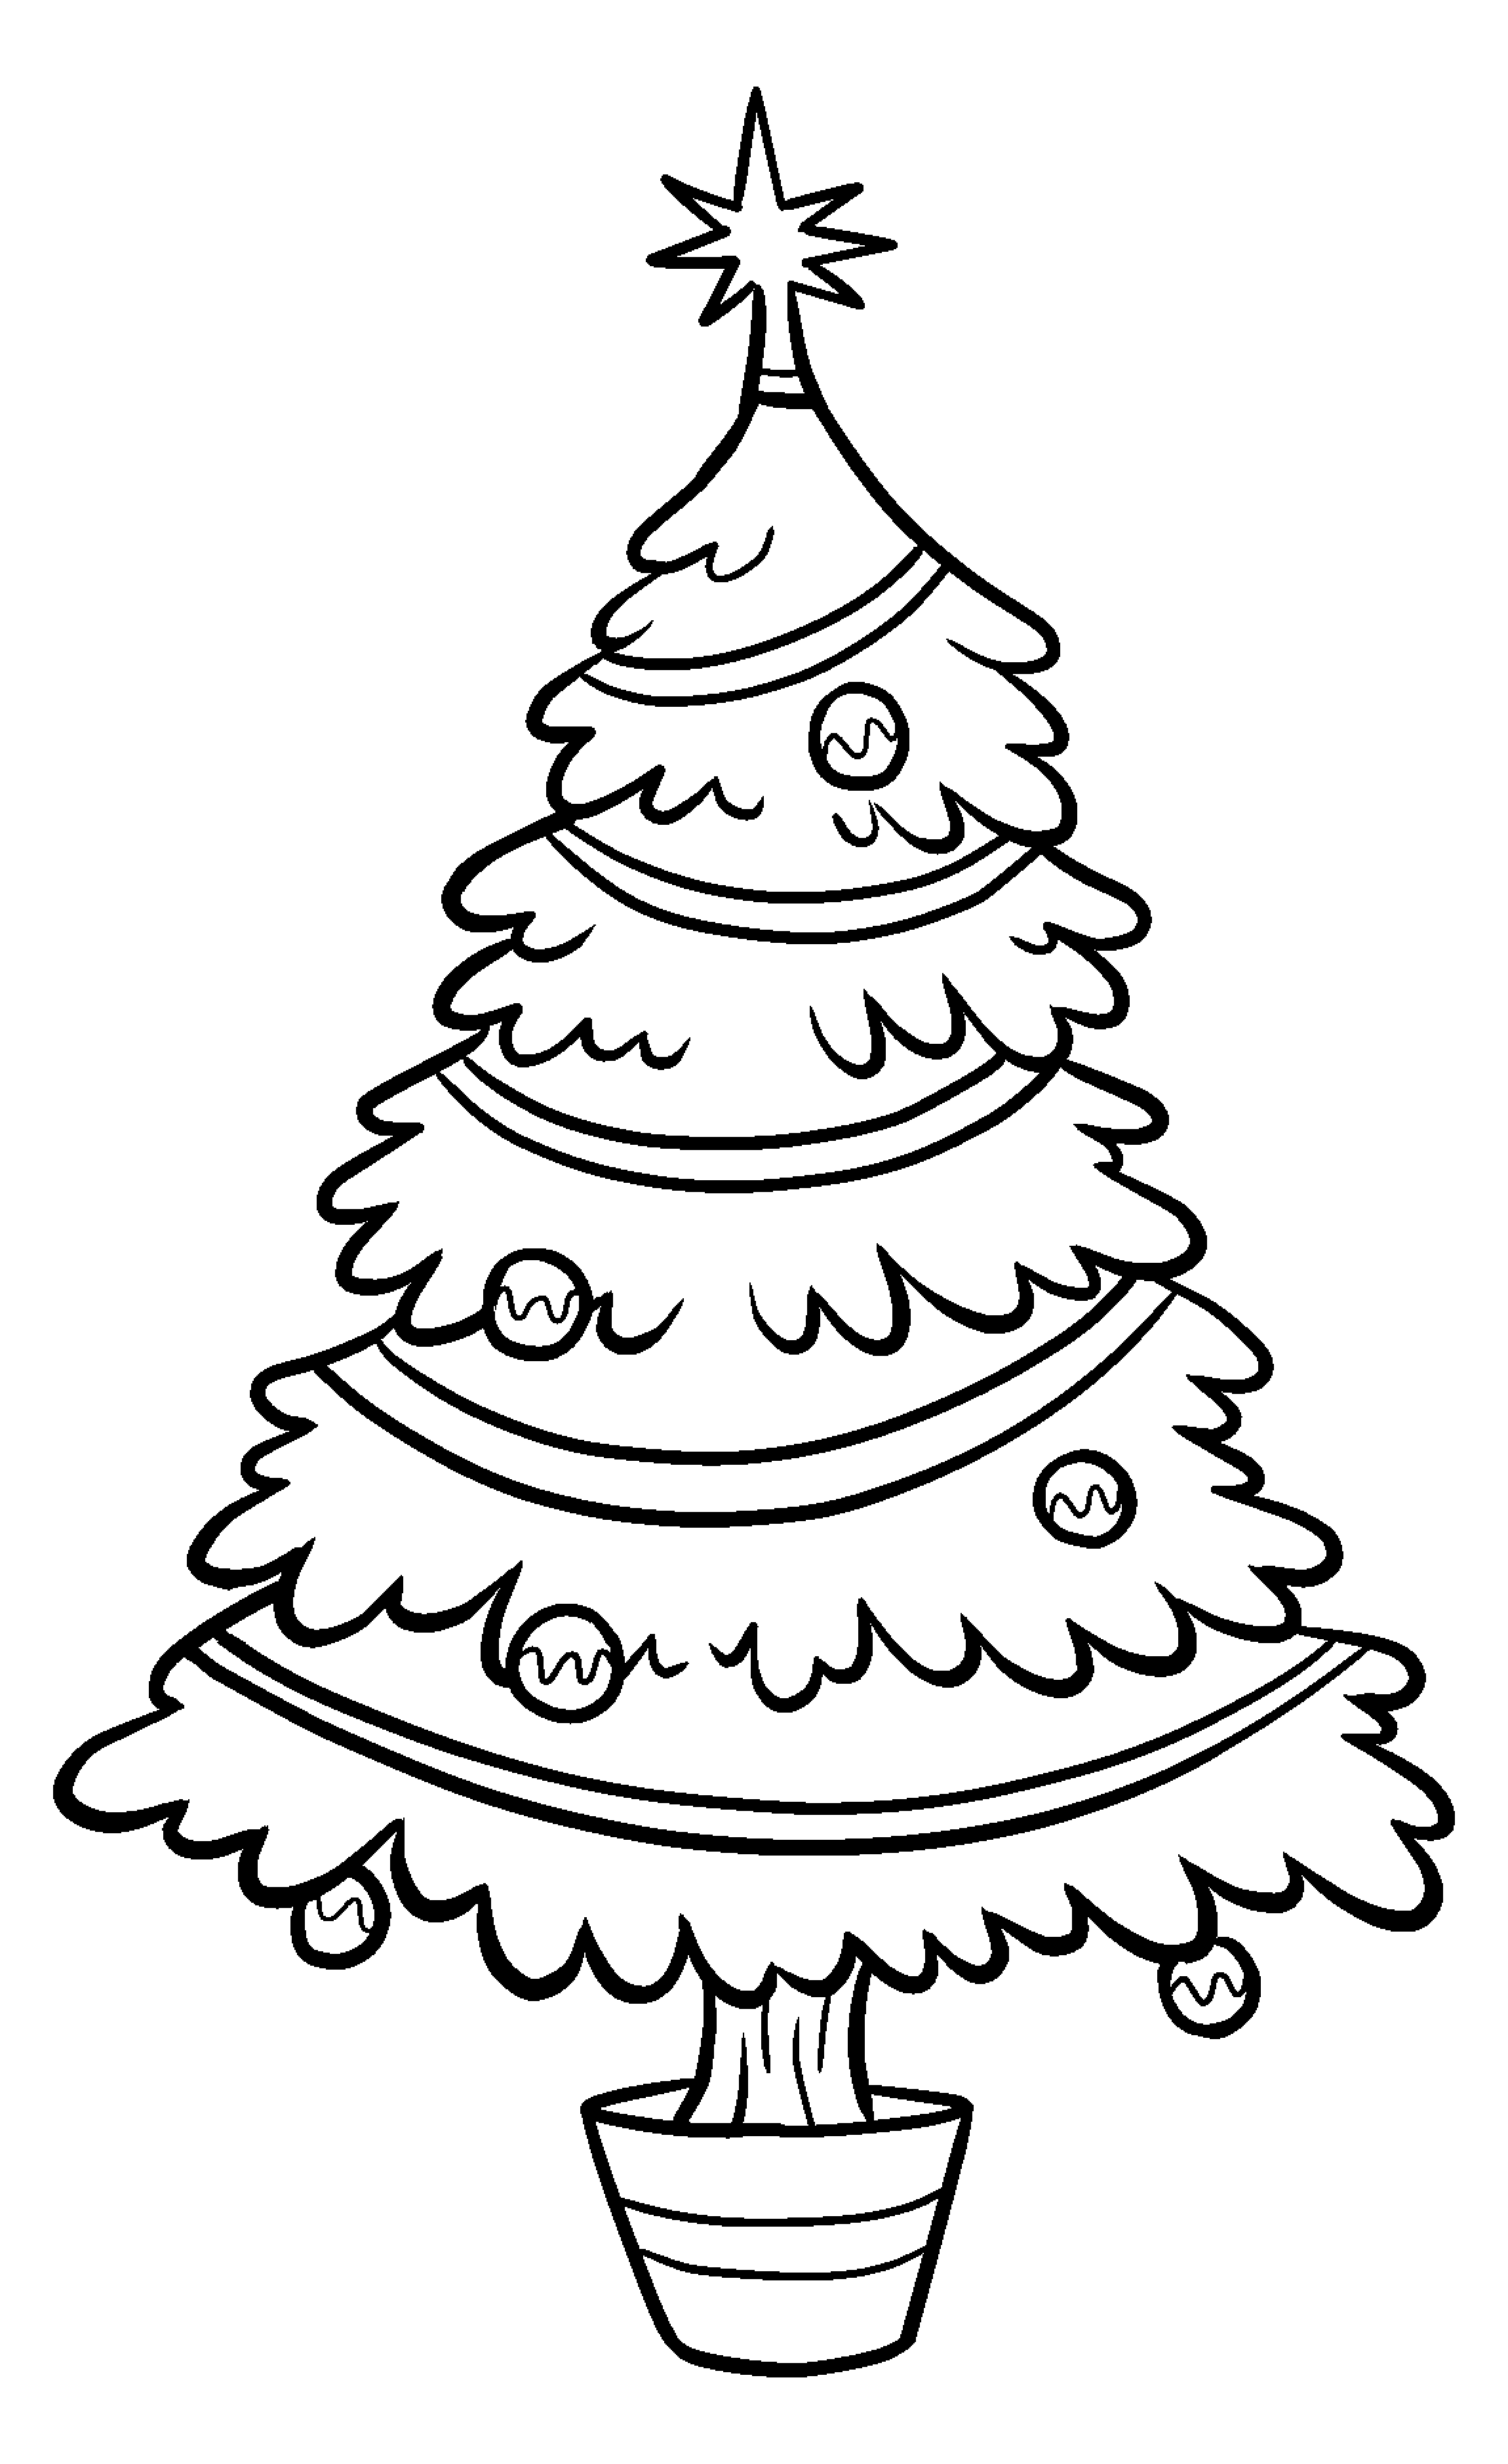 Christmas Tree Art.Christmas Tree Clip Art Bw Tim S Printables